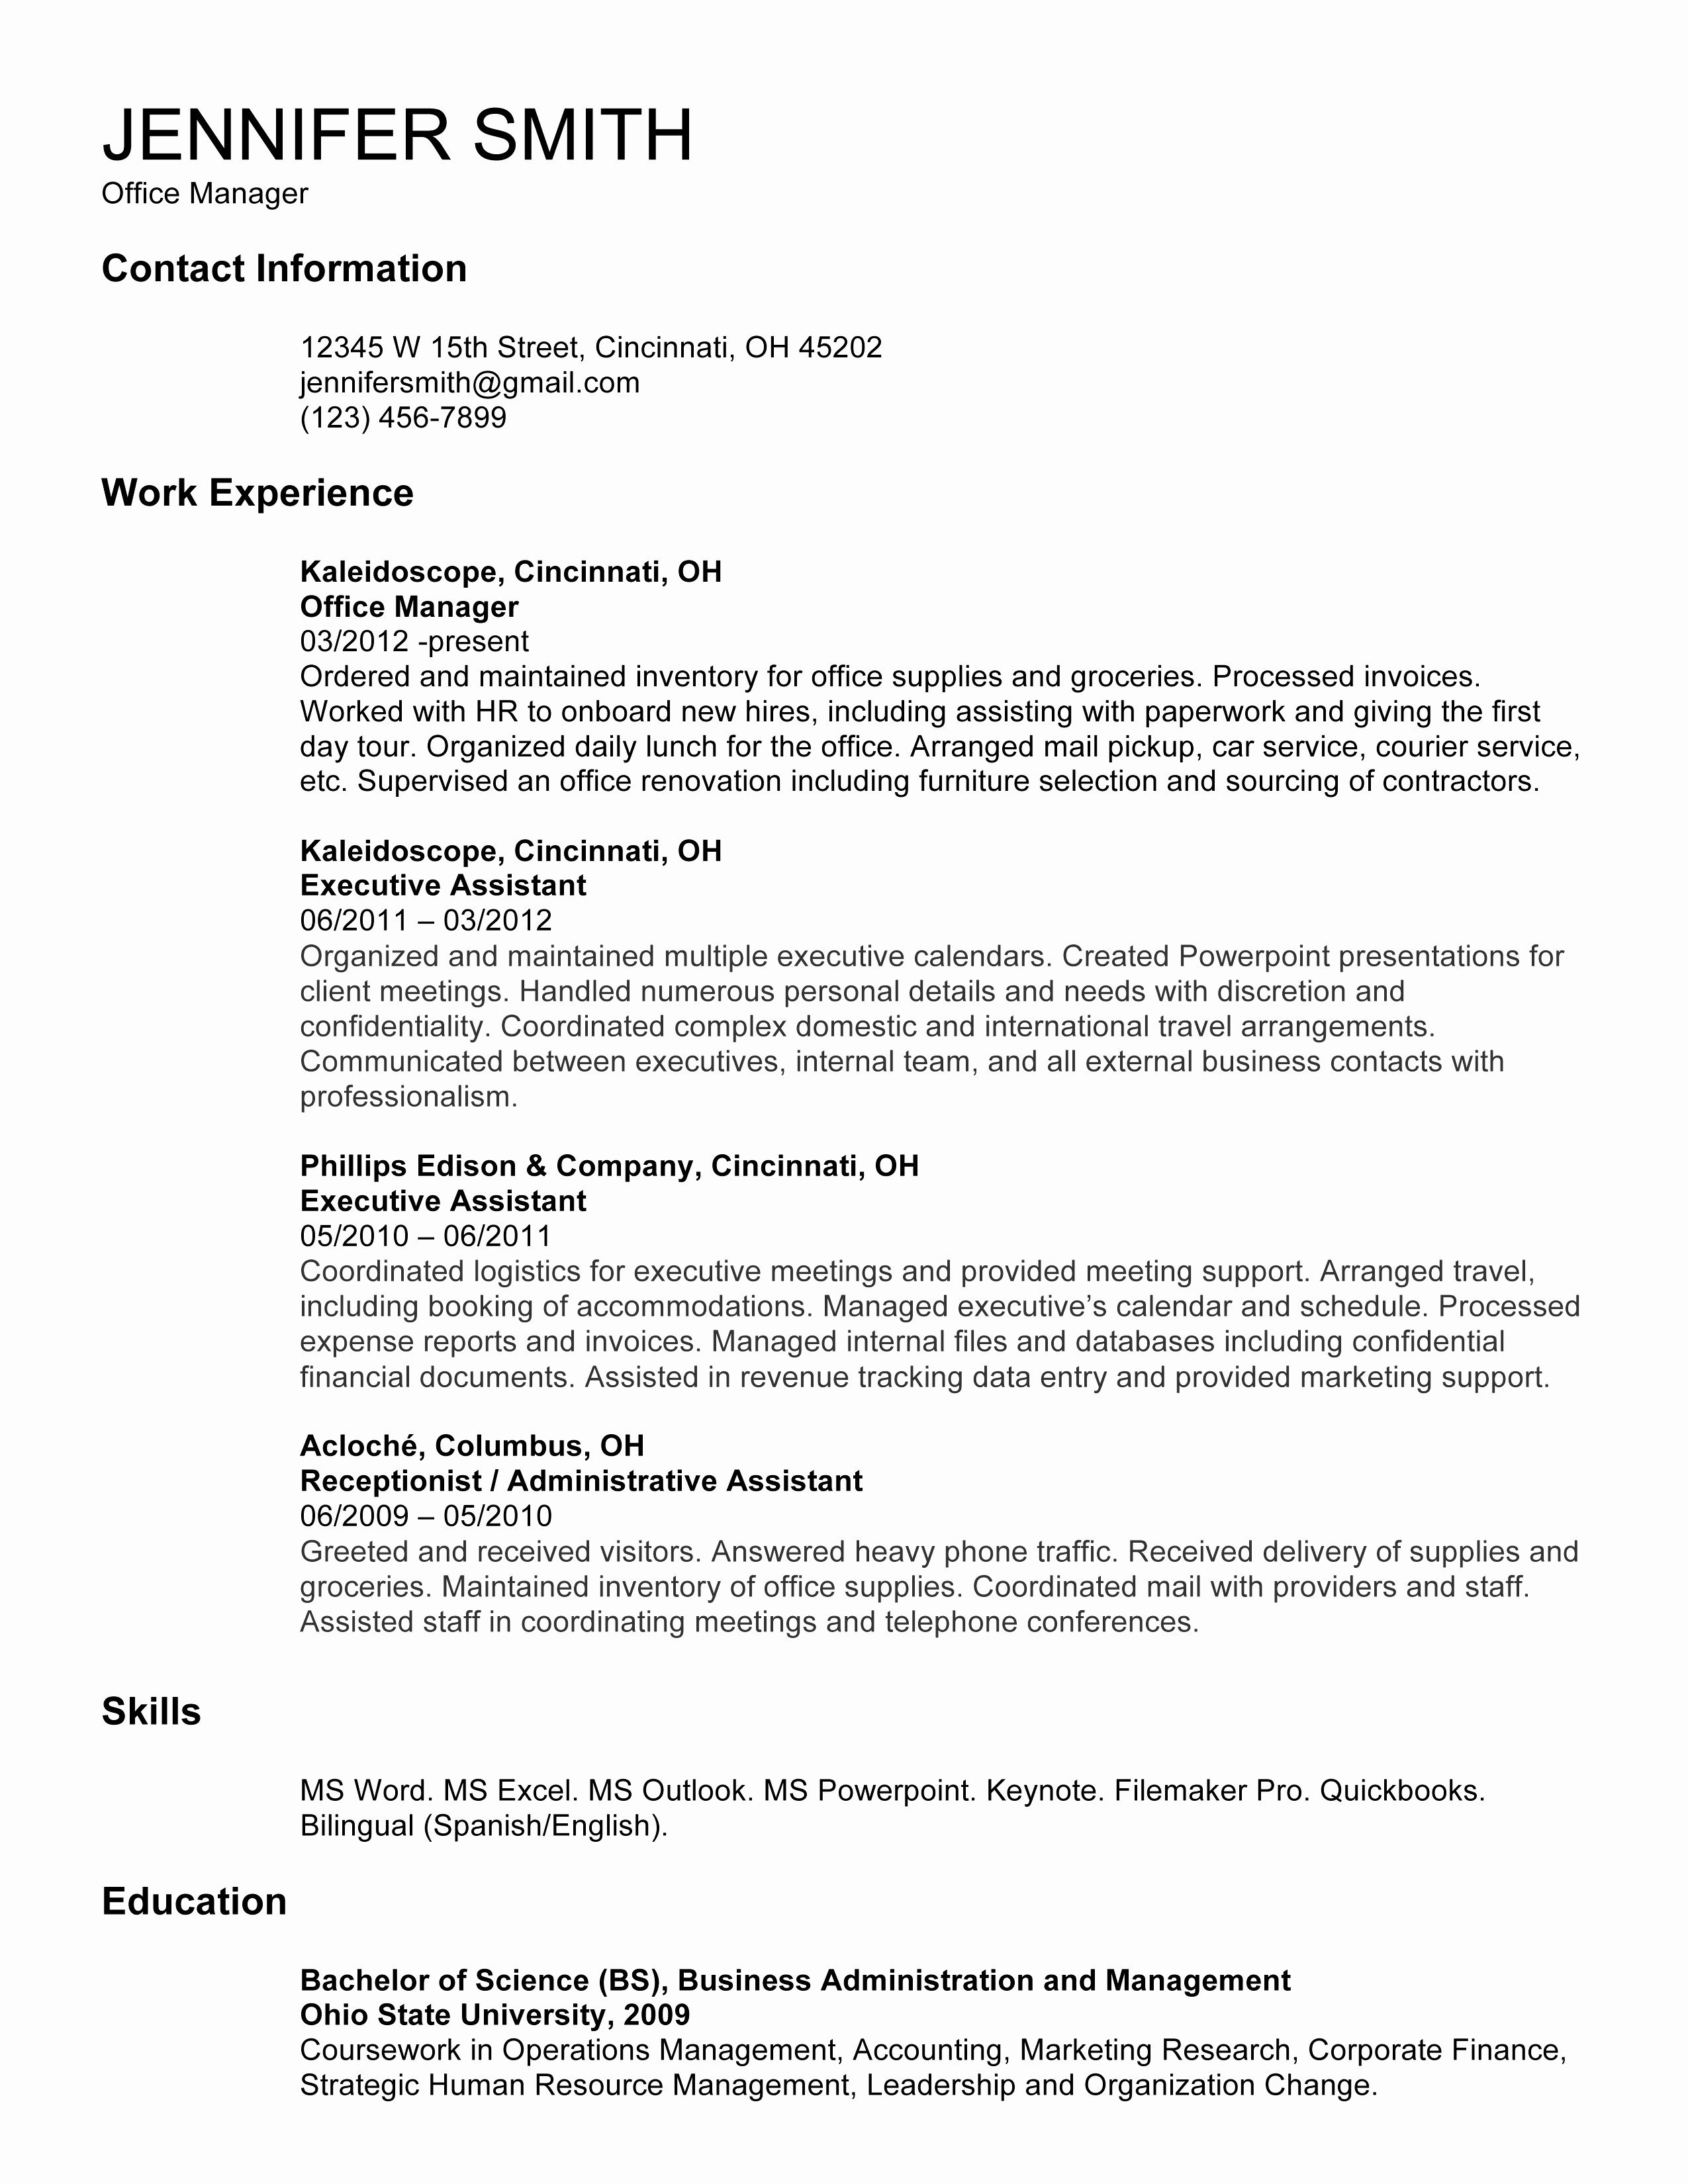 Resume Template for Receptionist - How to Make A Resume for A Receptionist Job Valid Fresh Reception